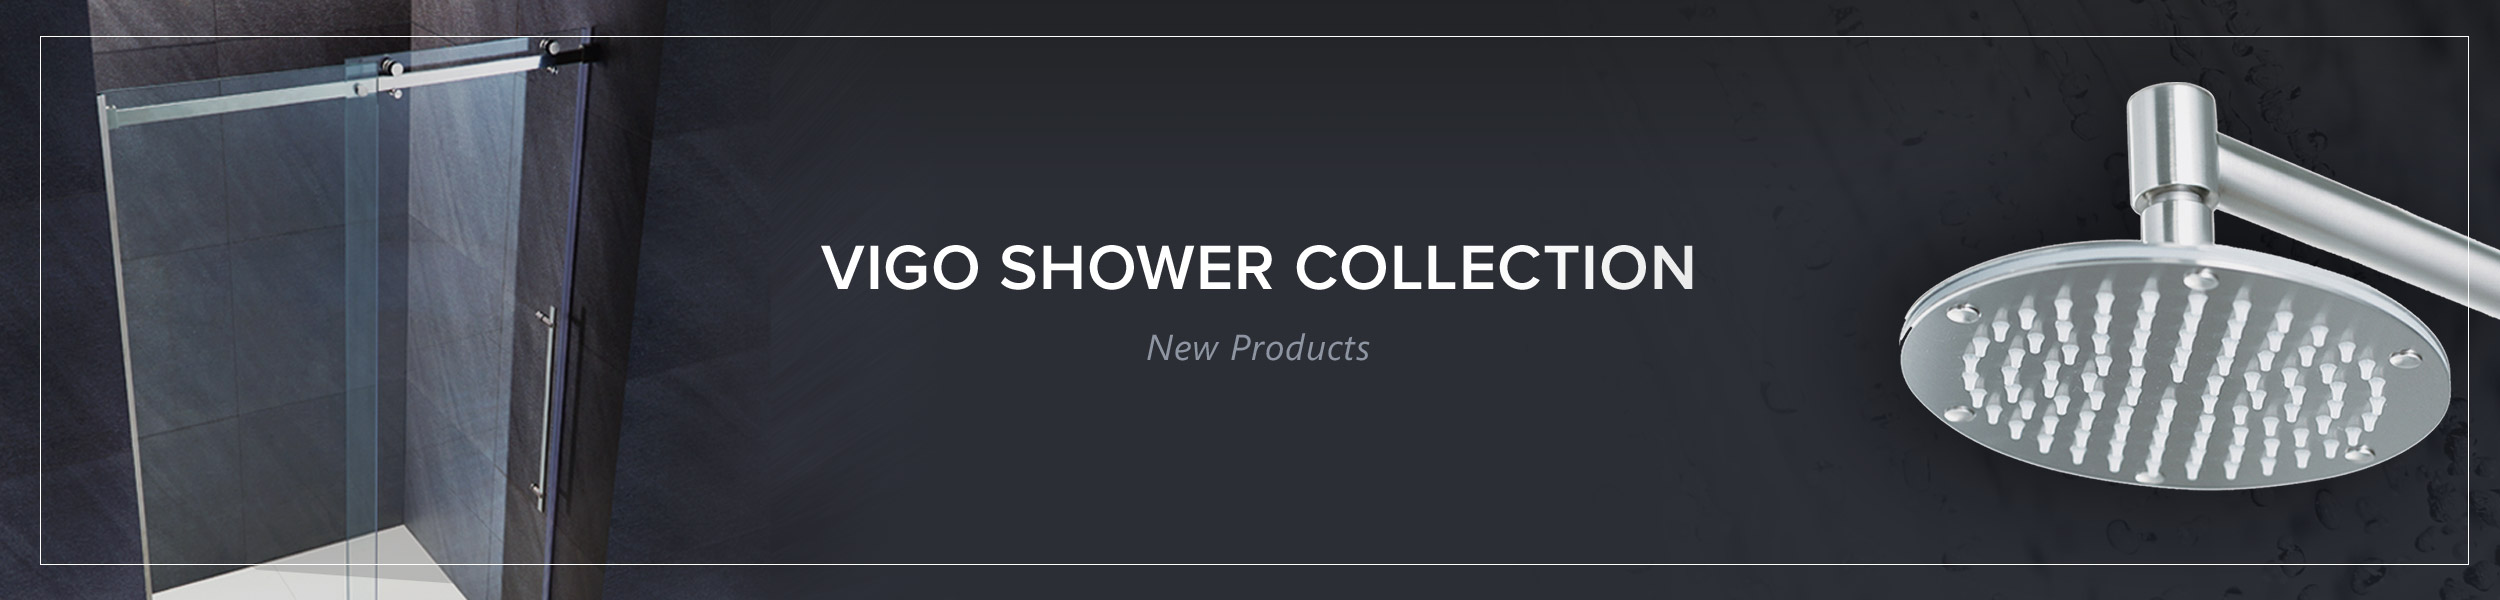 Shower Products - New